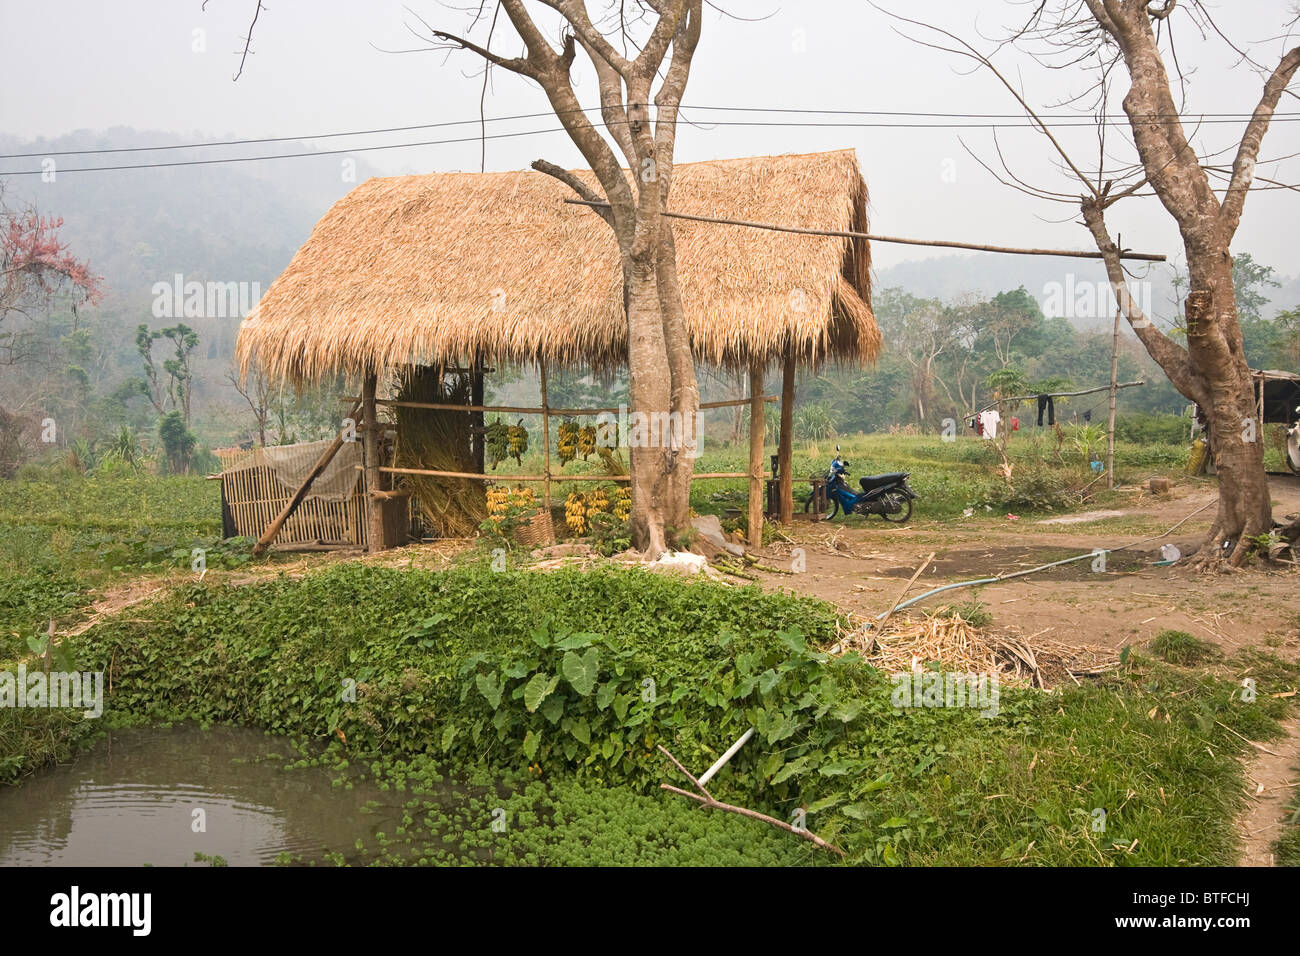 Palm thatch roof buildings at Patara Elephant Farm, an elephant rescue operation in the Chiang Mai area of Thailand - Stock Image